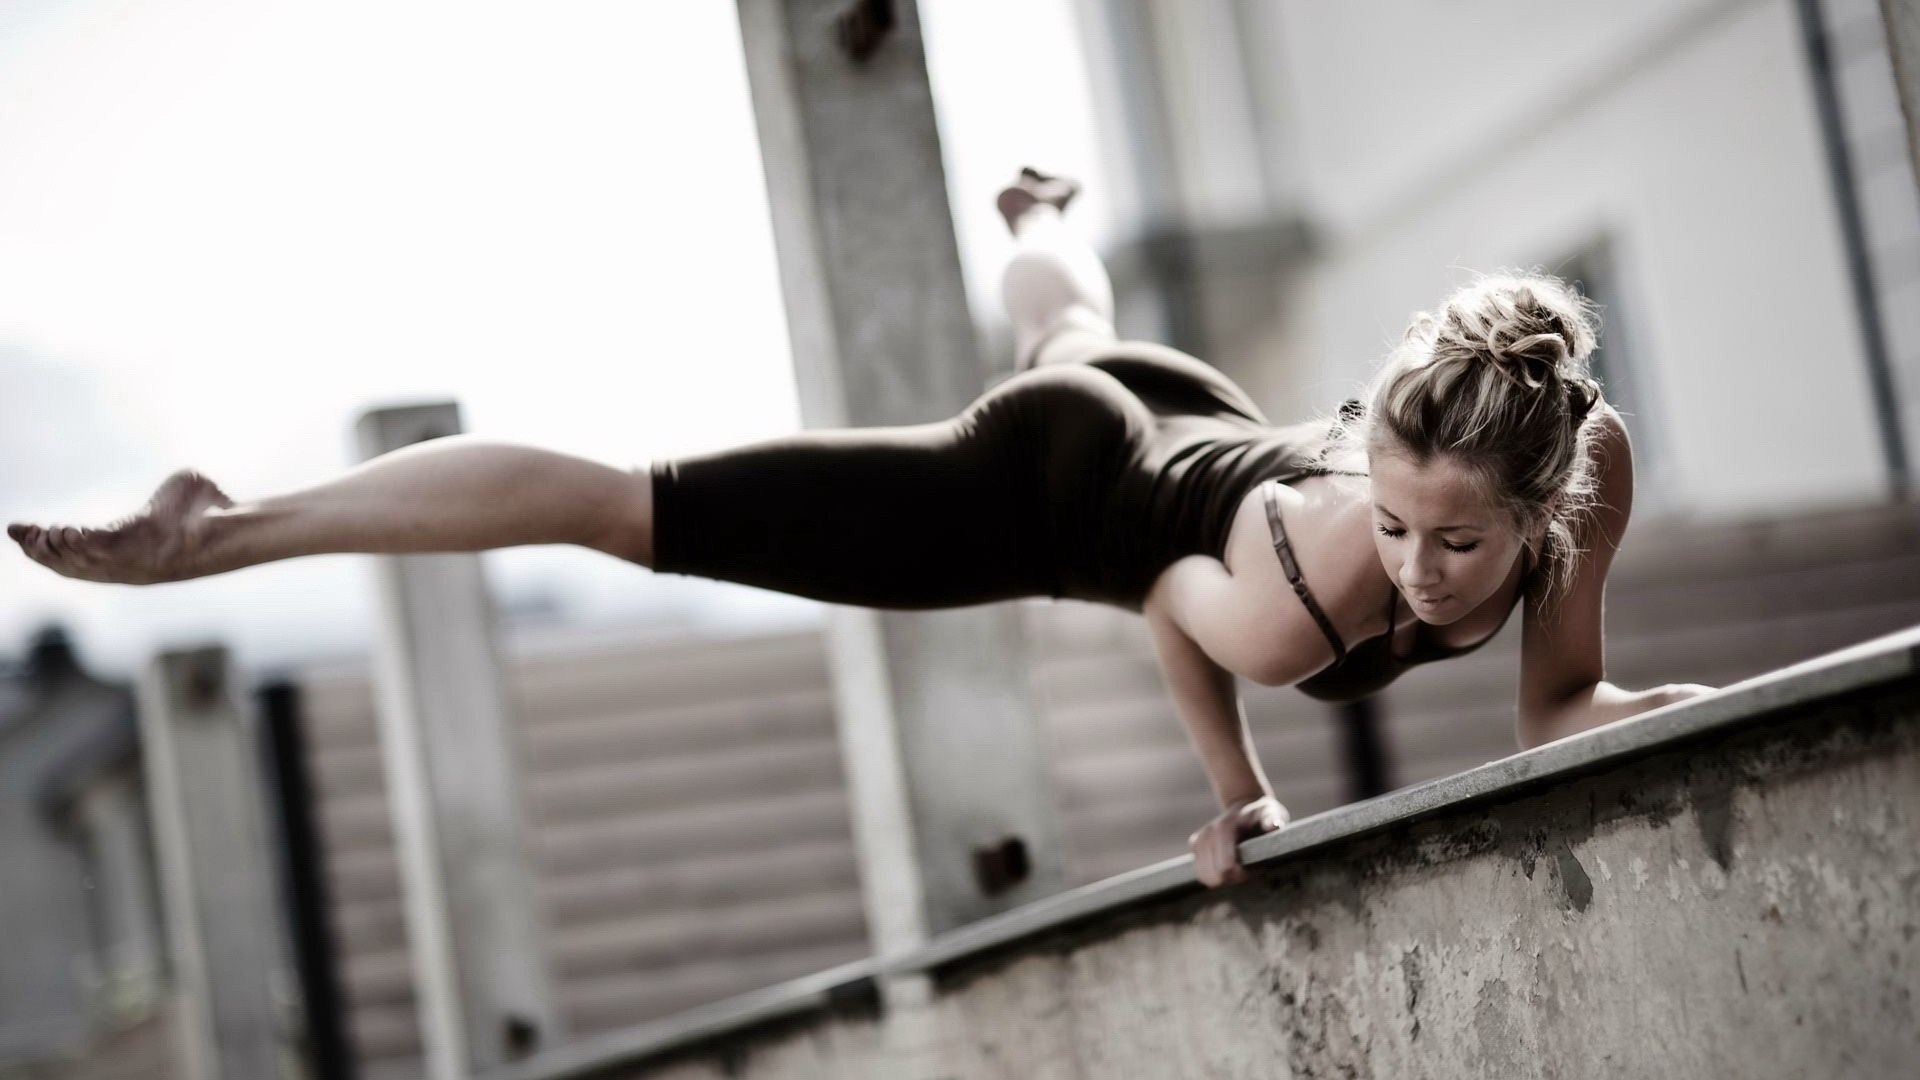 http://s4.picofile.com/file/7891005478/incredible_strength_parkour_girl_on_a_high_building_in_1920x1080_36_hd.jpg